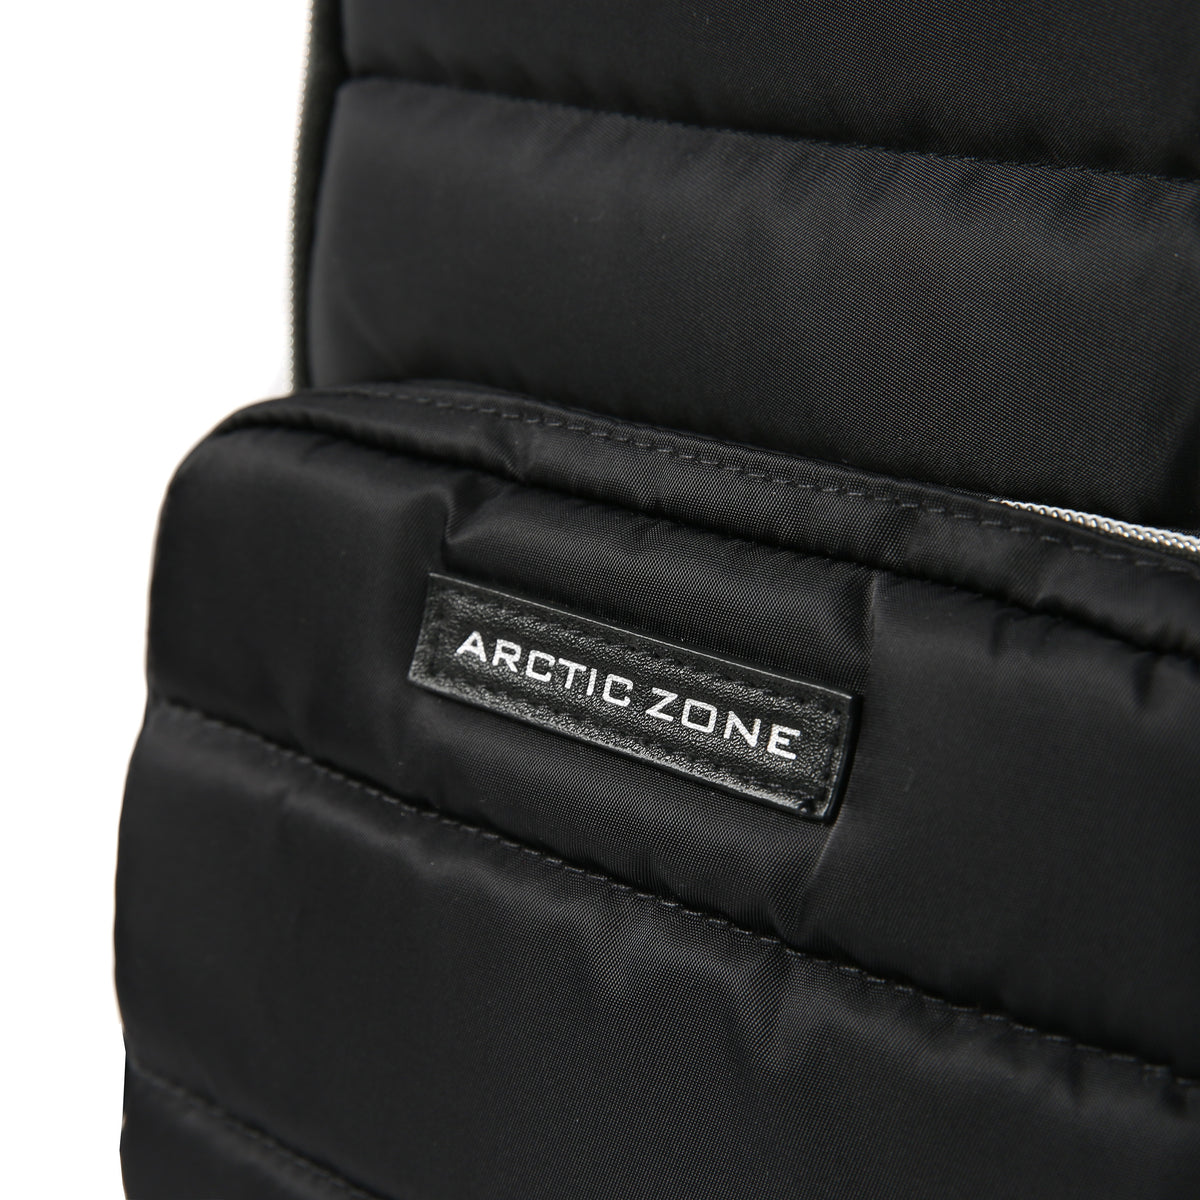 Arctic Zone® Quilted Cooler Backpack - Black - Front zippered pocket